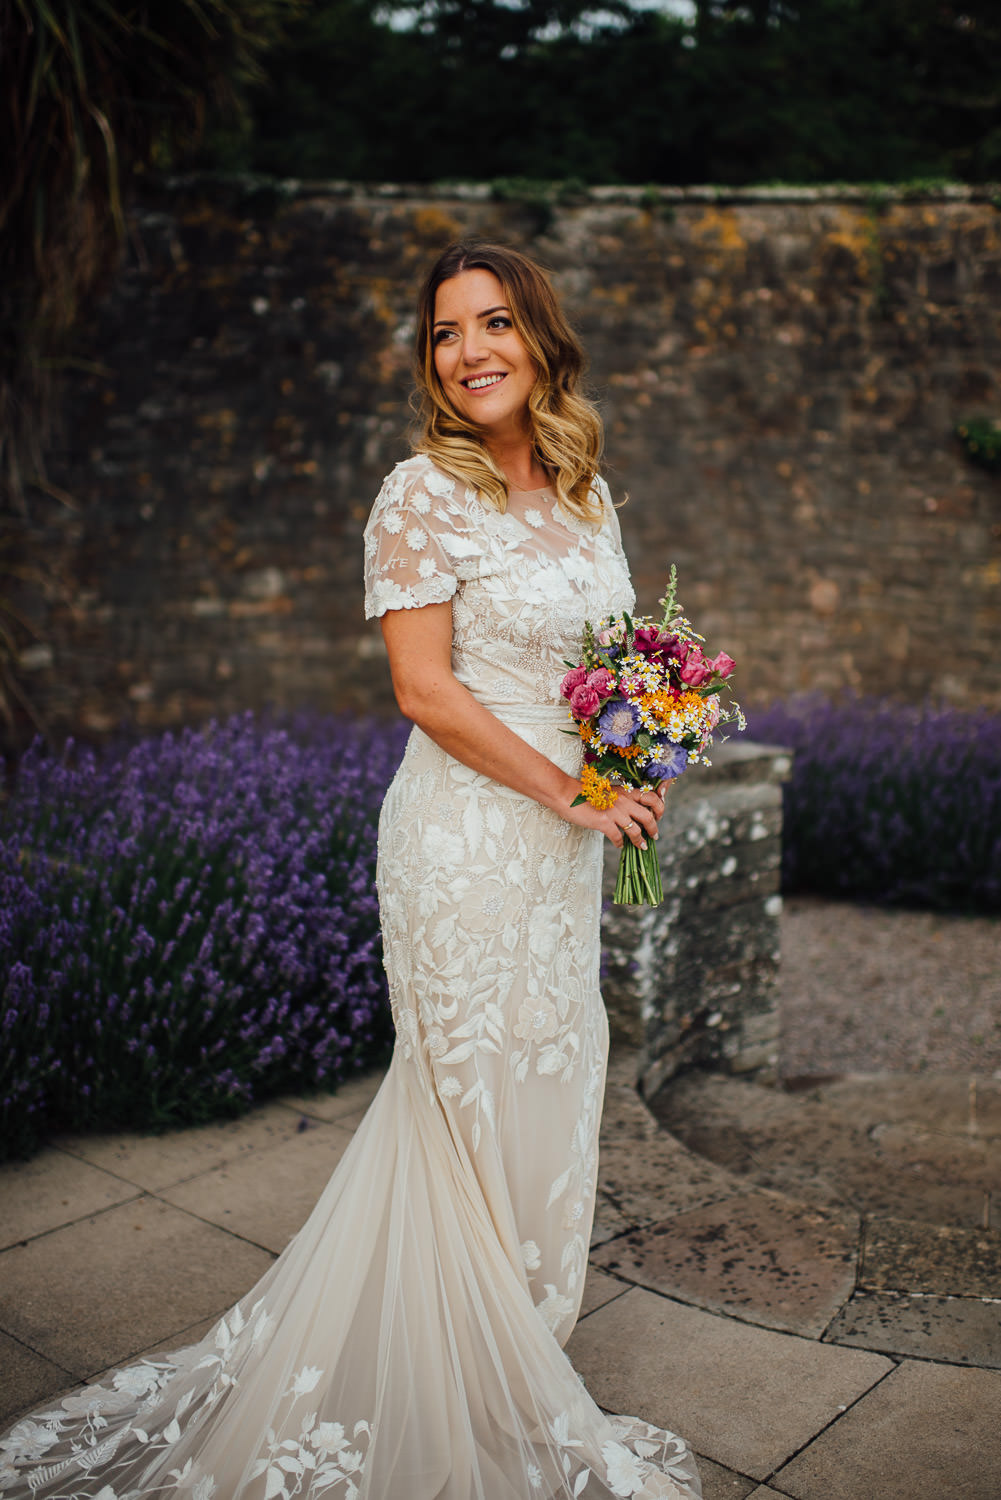 Bridal bouquet in Barley Wood House Bristol Wedding by bristol wedding photographer the shannons photography